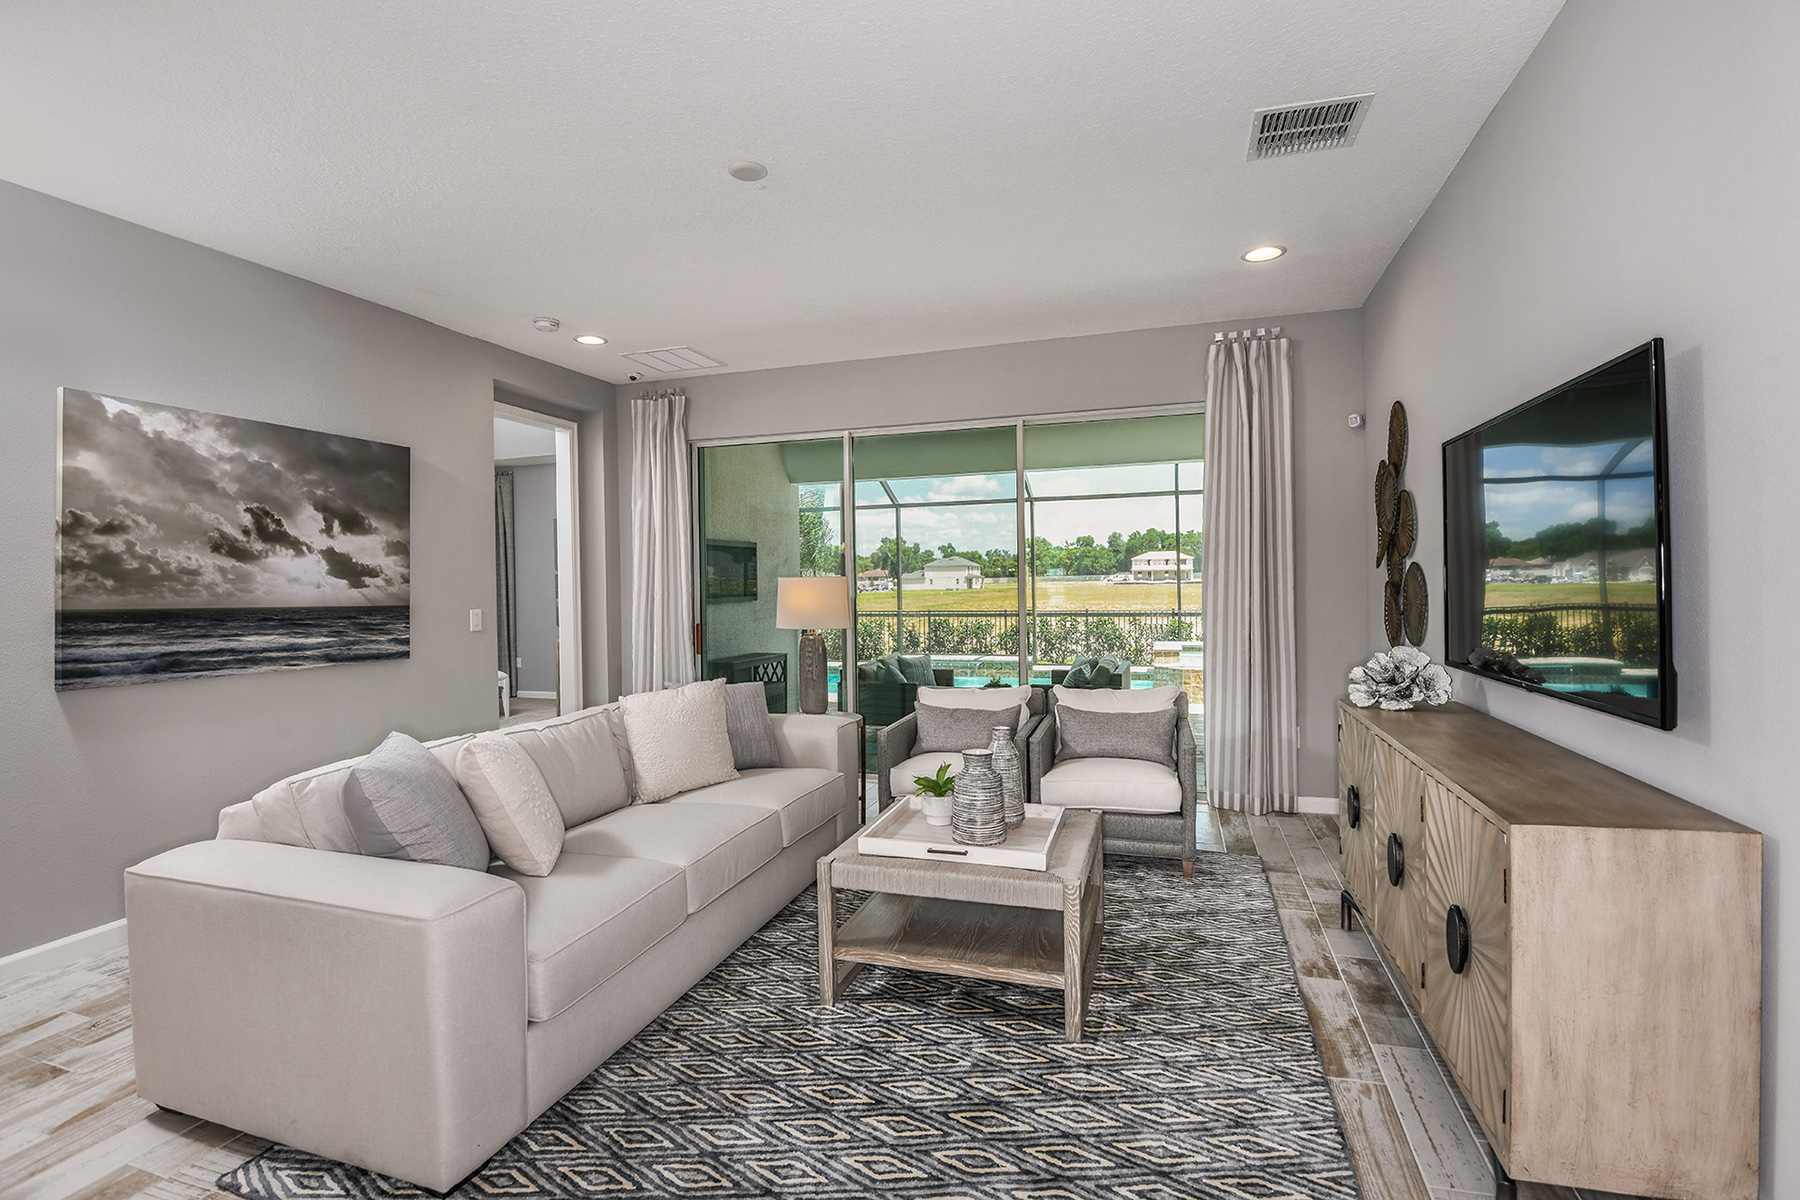 Coquina II Plan Greatroom at Wellen Park - Renaissance in Venice Florida by Mattamy Homes